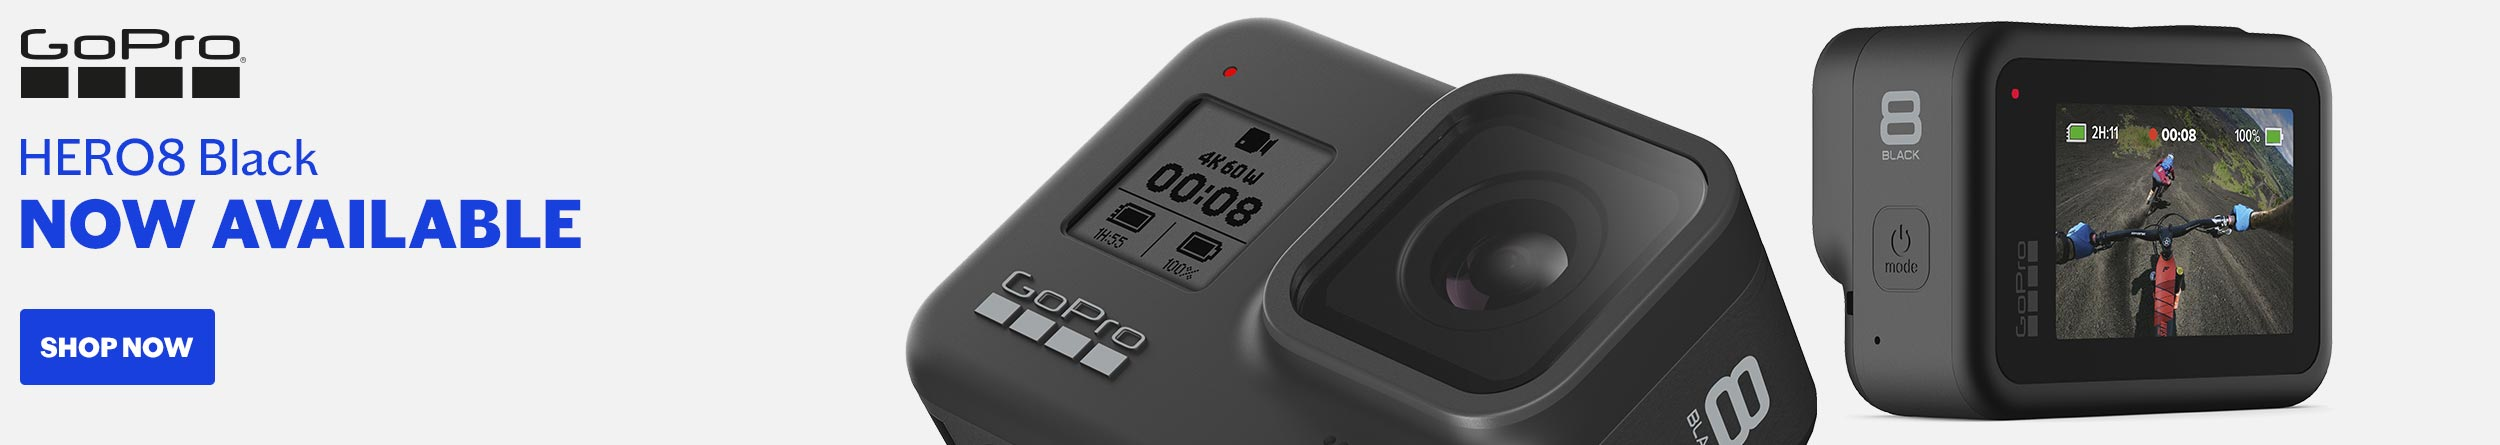 GOPRO hero8 available NOW